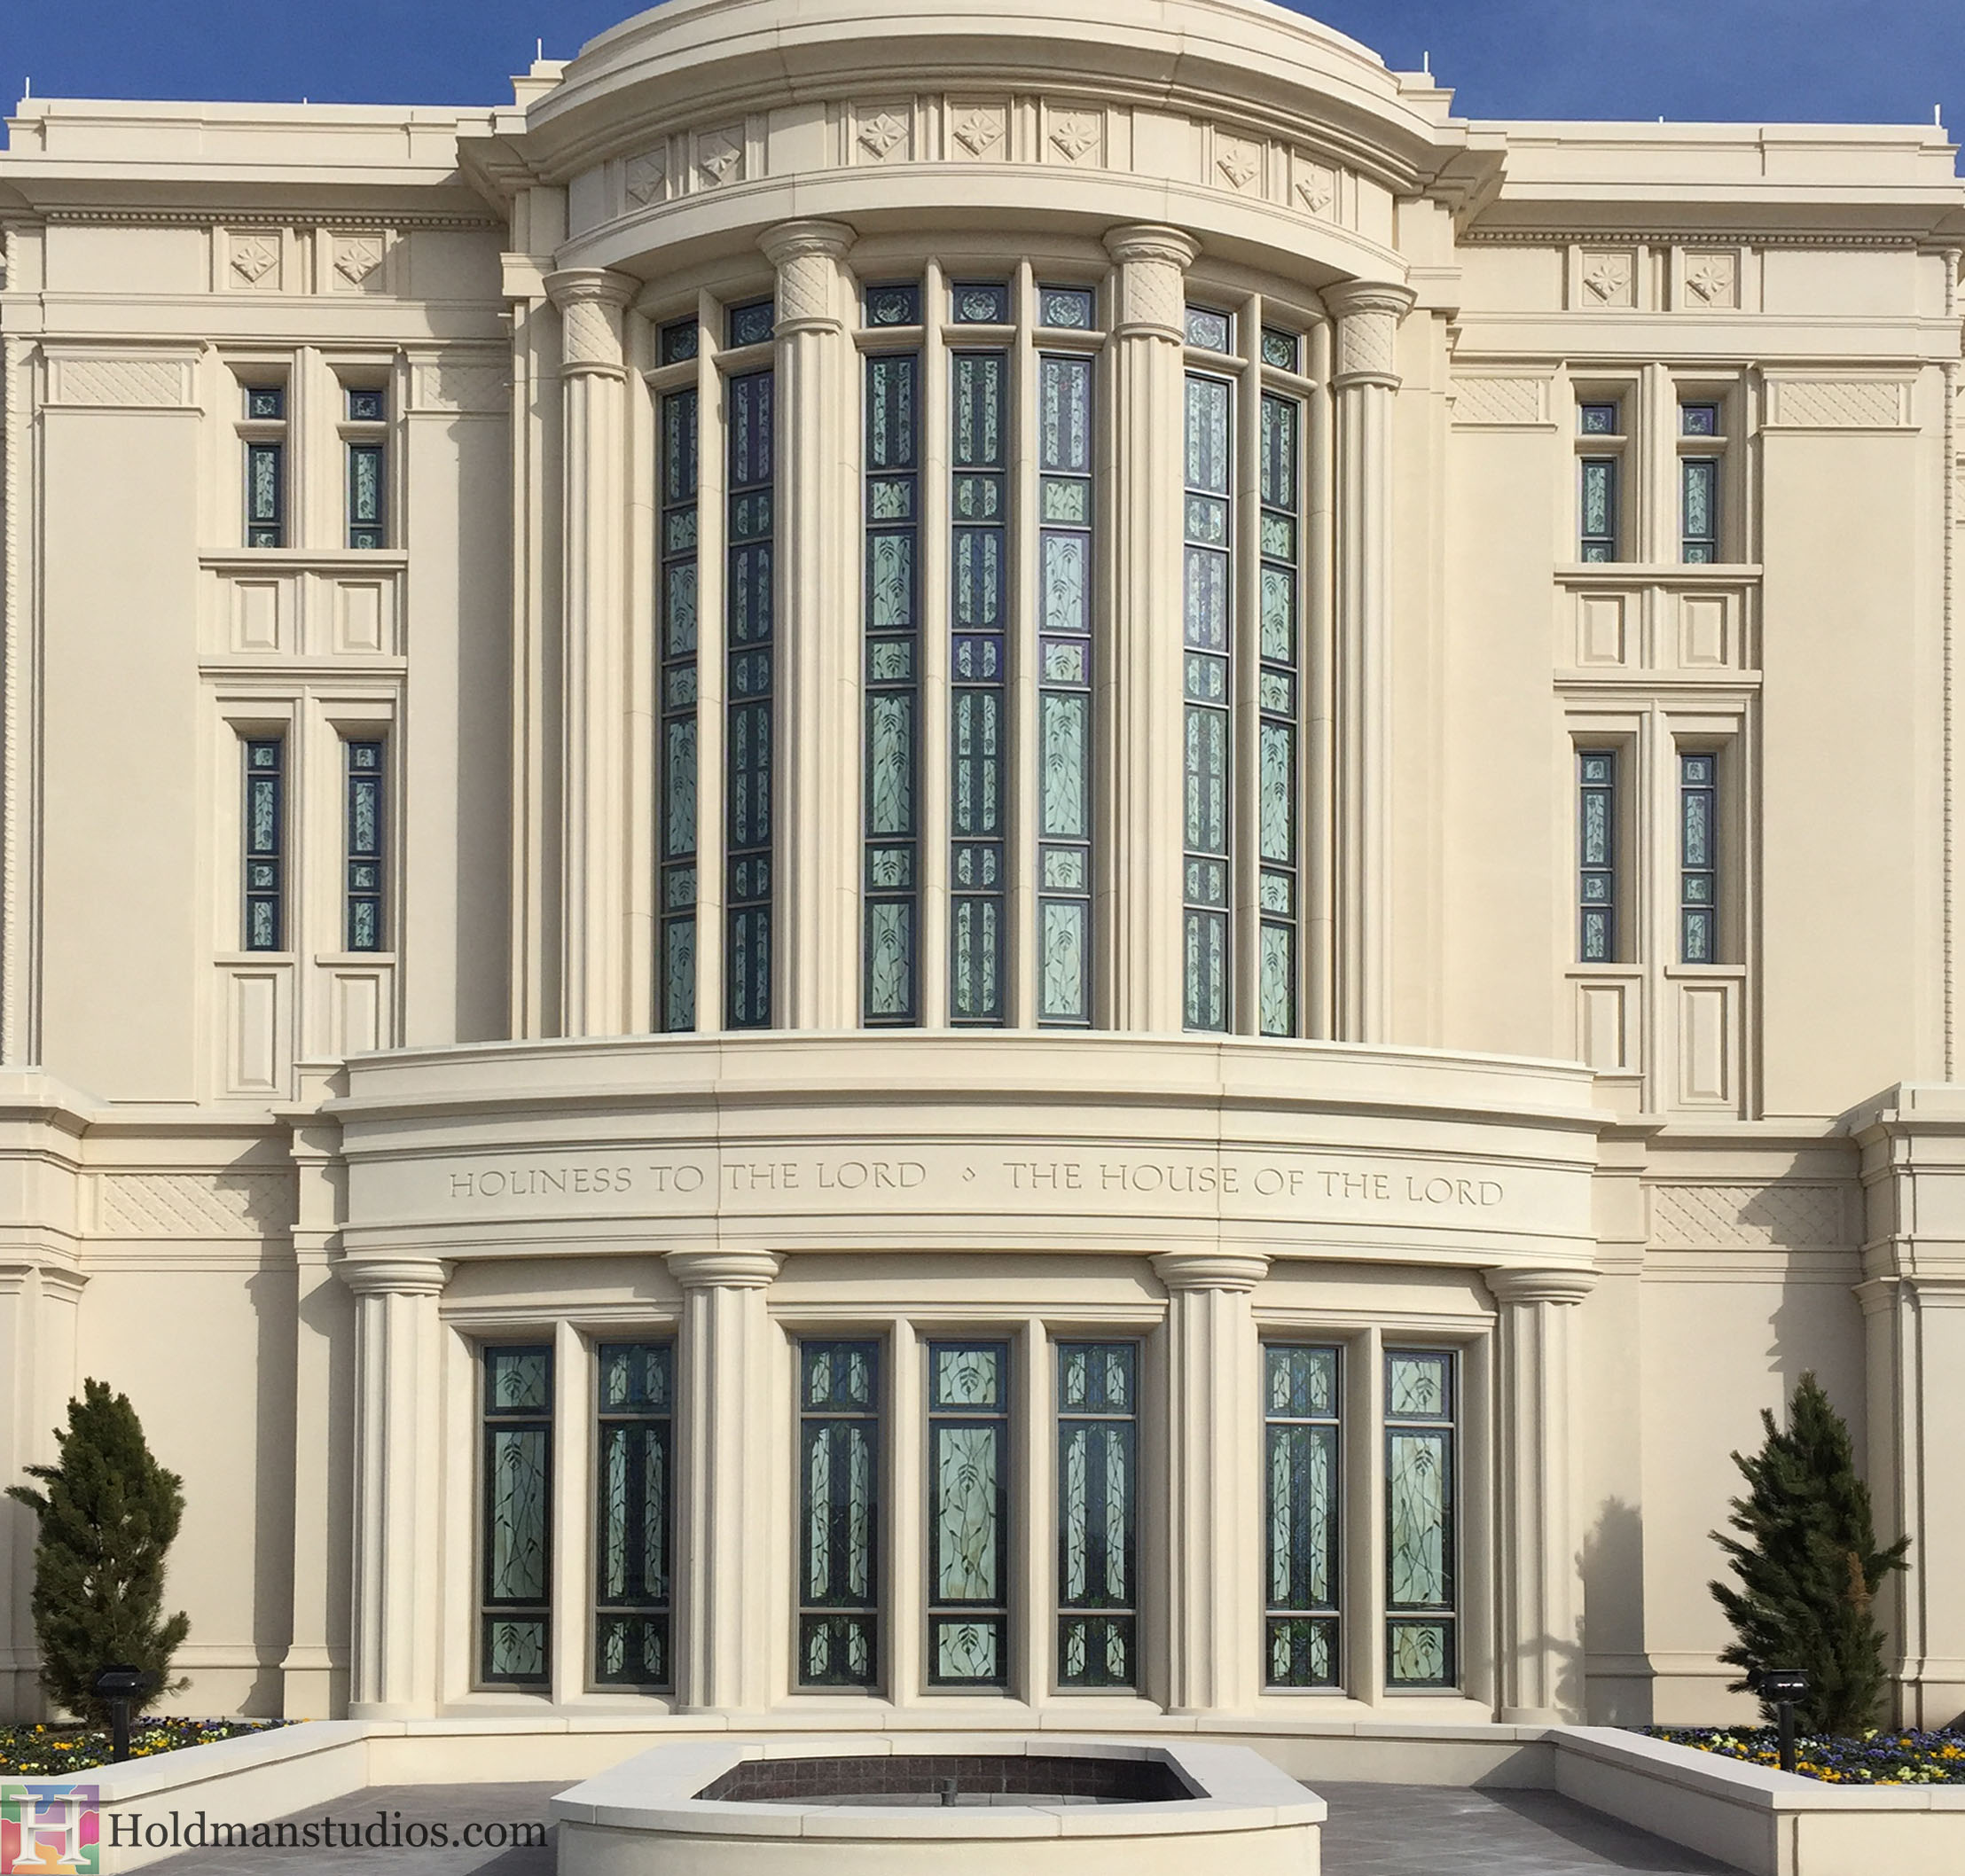 Holdman_Studios_Stained_Art_Glass_Payson_Utah_Temple_Apple_Blossoms_Leaves_DNA_Spiral_Exterior_Windows.jpg